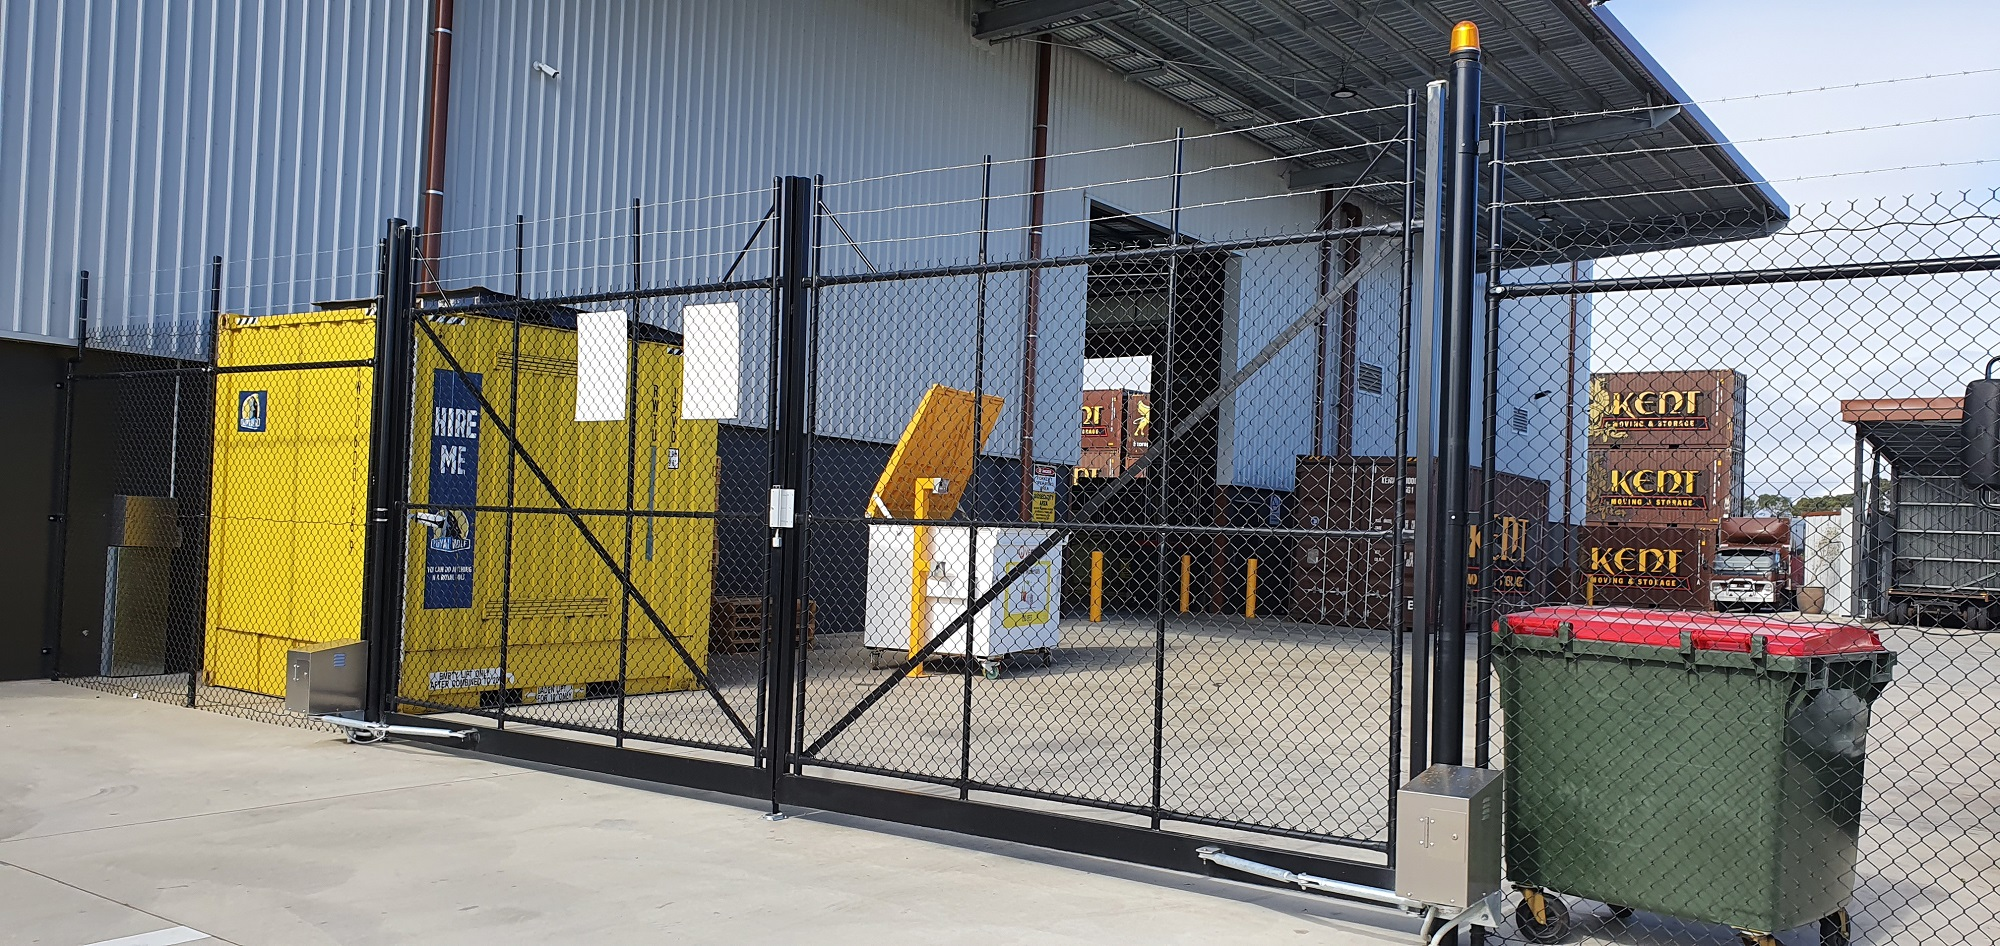 Commercial Fencing Adelaide Fence Centre Chain Mesh Security Fence Wingfield 7